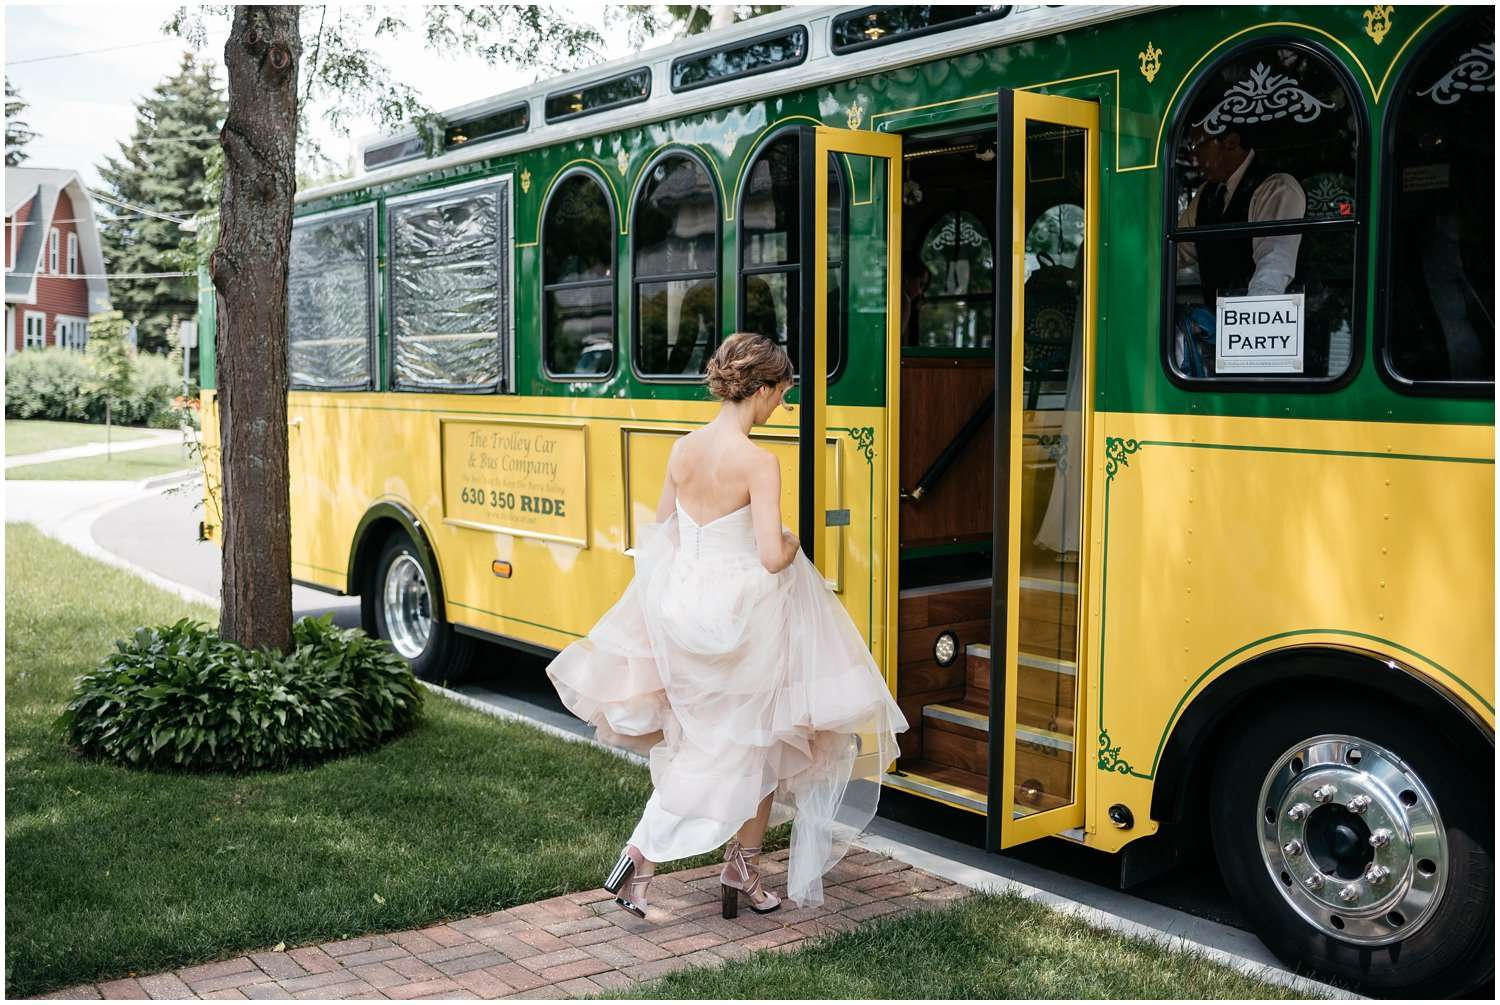 marija krosnjar, brian eckert, chicago, wedding, photographer, photography, armour house, base salon, field and florist, sodexo, deerfield bakery, blue water kings, the trolley car and bus company, Kelly Faetanini, Jenny Yoo, Valentino, Shannon O'Brien, lifestyle, glamorous, whimsical, romantic, natural, minimalistic, mansion, blush dress, floral bridesmaid dresses, blush wedding gown, blush wedding dress, blogger, fashion blogger, lifestyle, sportsanista, wedding photographer, wedding photography,